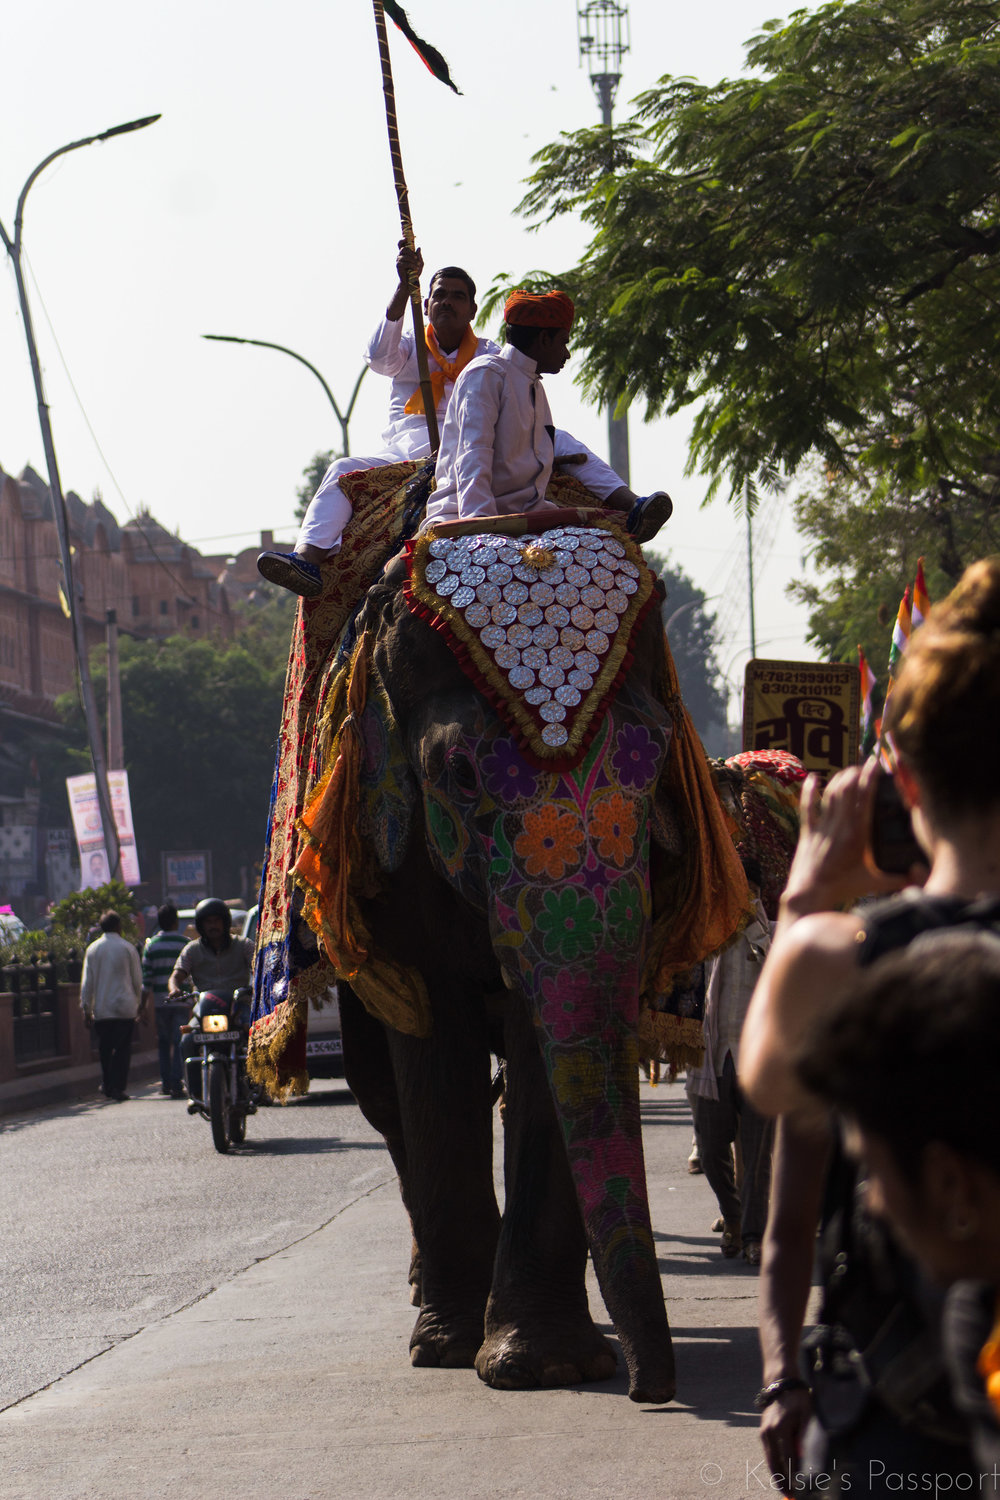 They ride the elephants, they paint the elephants, they whip the elephants. If this bothers you, Jaipur may not be a city you want to visit.